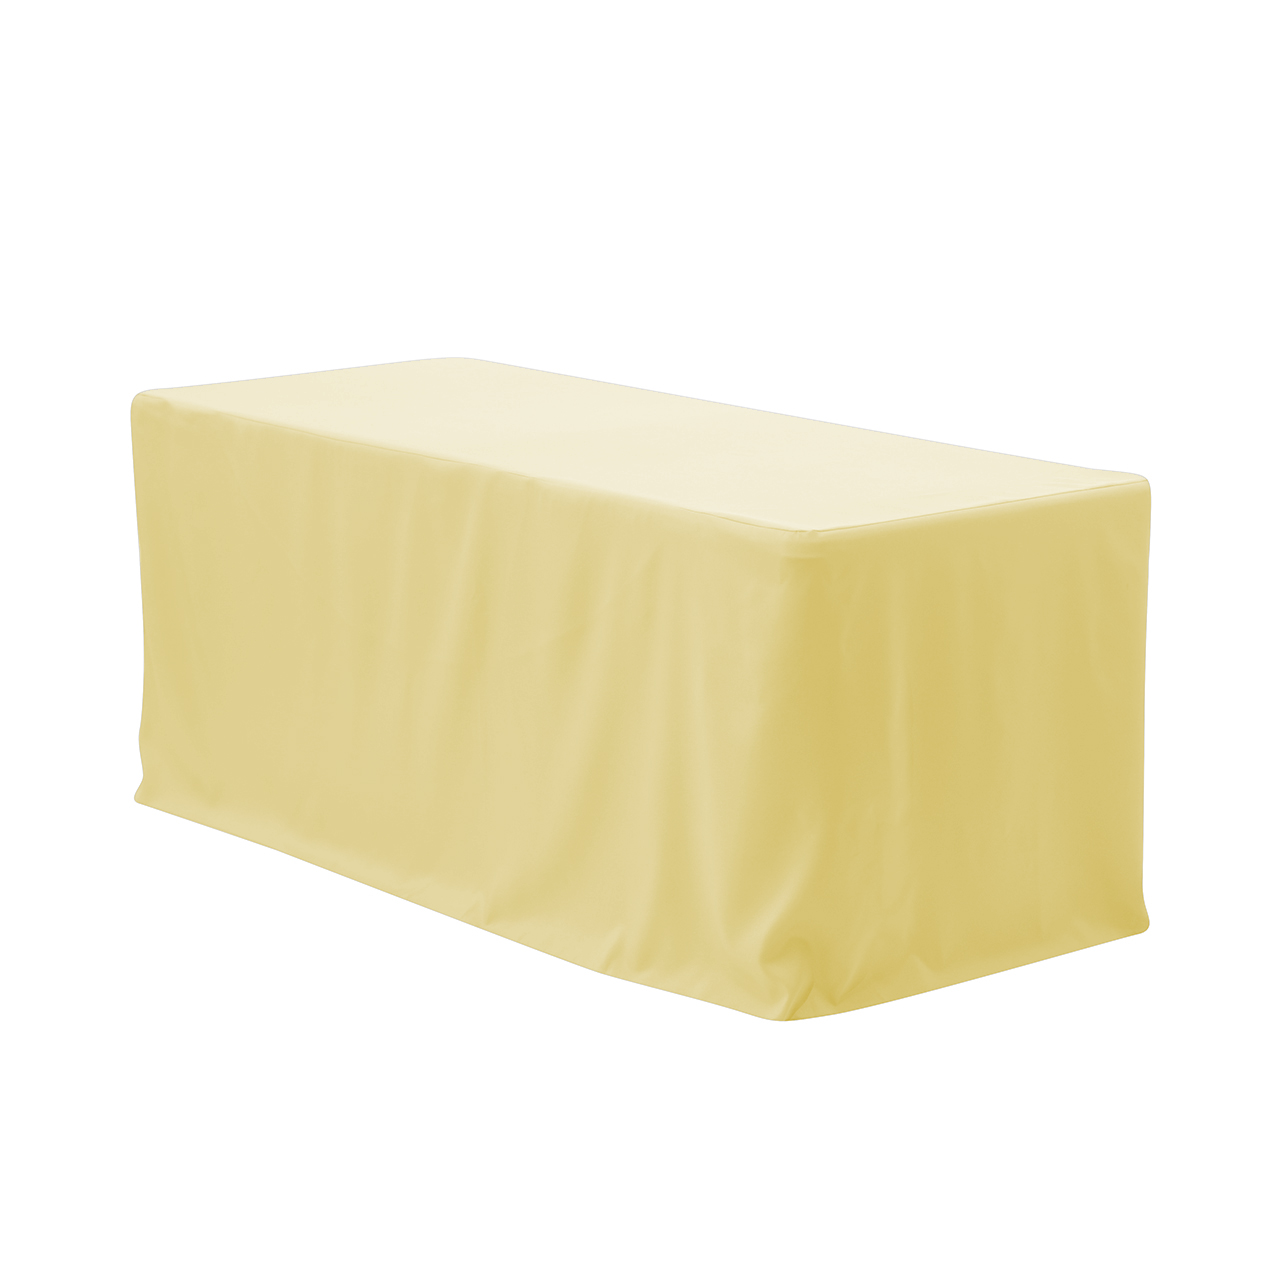 yellow chair covers best accent chairs for living room your 6 ft fitted polyester tablecloth rectangular pastel wedding party birthday patio etc walmart com